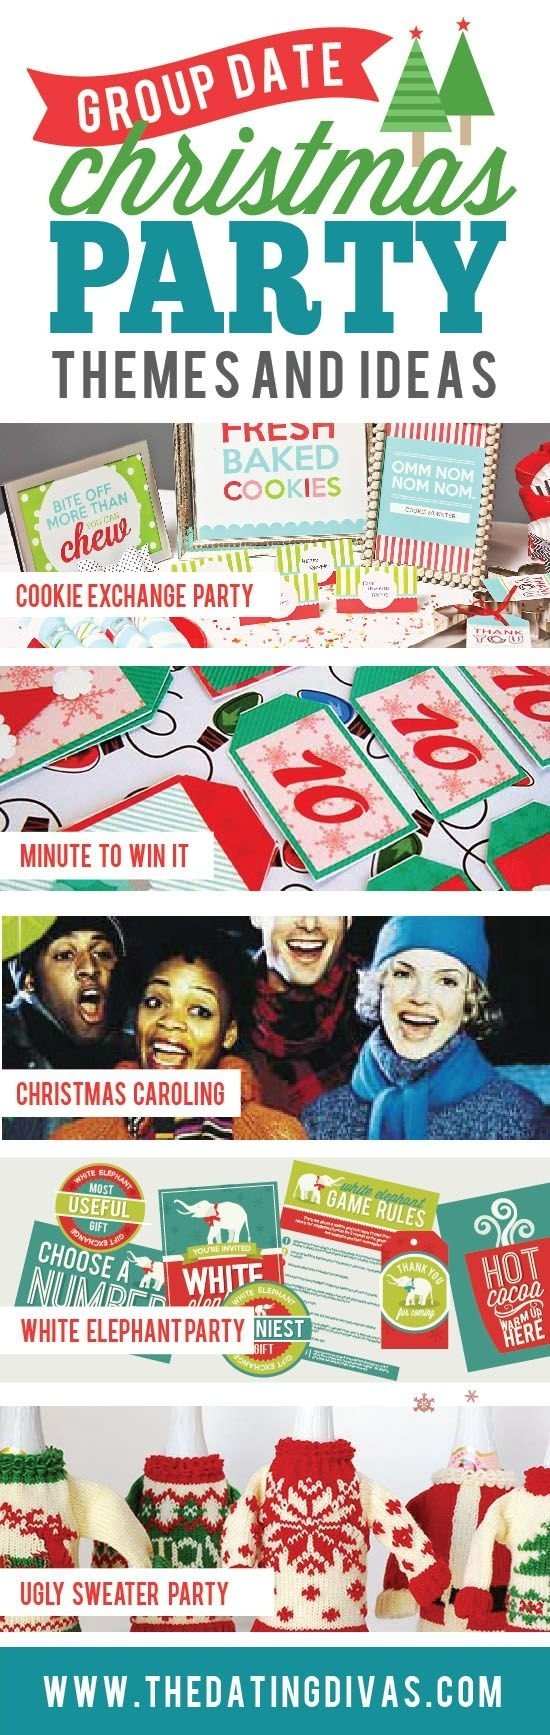 10 Best Youth Group Christmas Party Ideas 429 best church youth ideas and games images on pinterest 2021